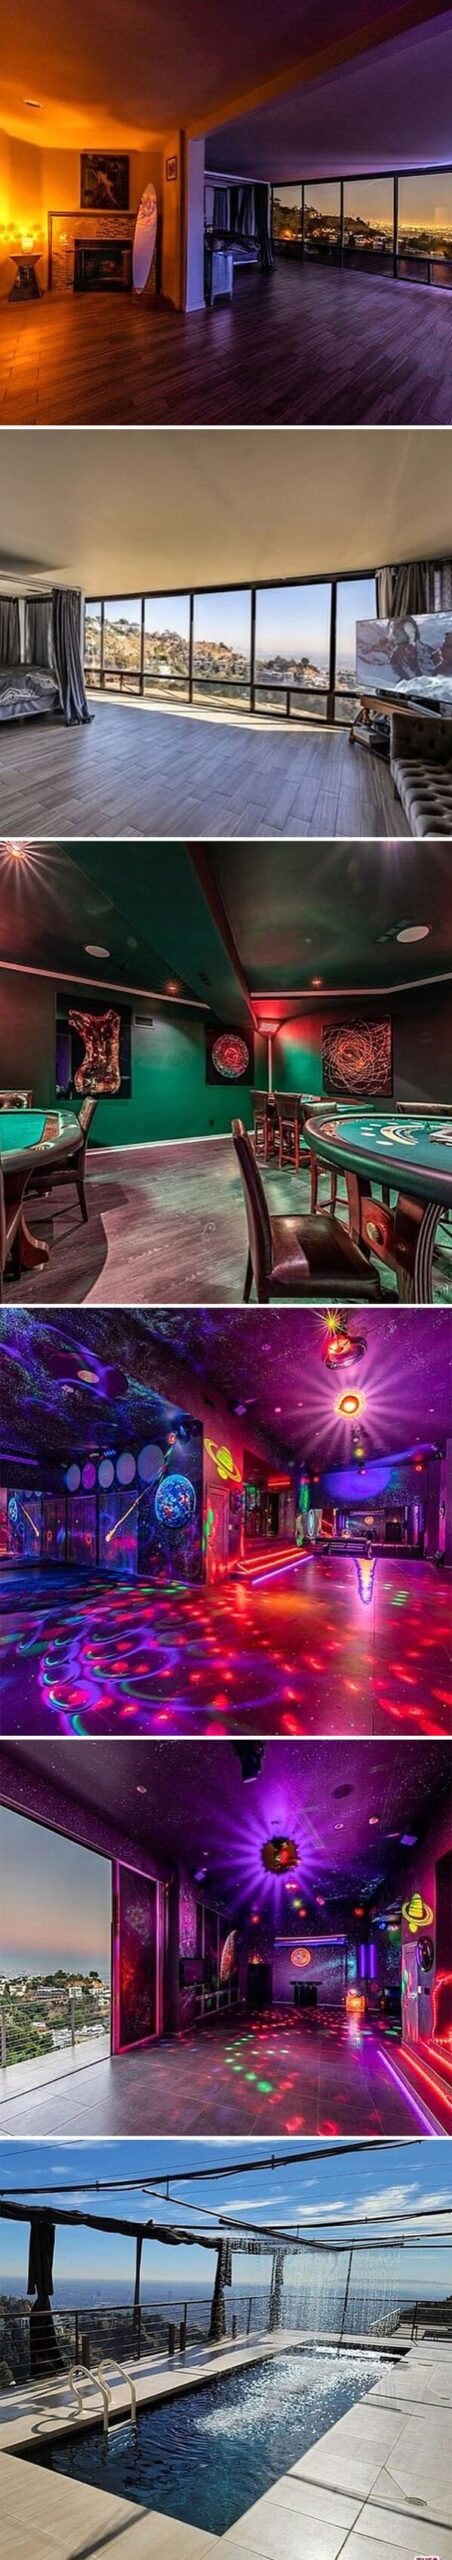 insane gambling room in pricey house looks like a casino, Zillow gone wild, weird and funny real estate listings, real estate agents who did extra, lol, funny pics of houses, ridiculous houses to buy, zillowgonewild, instagram, humor, funny pics